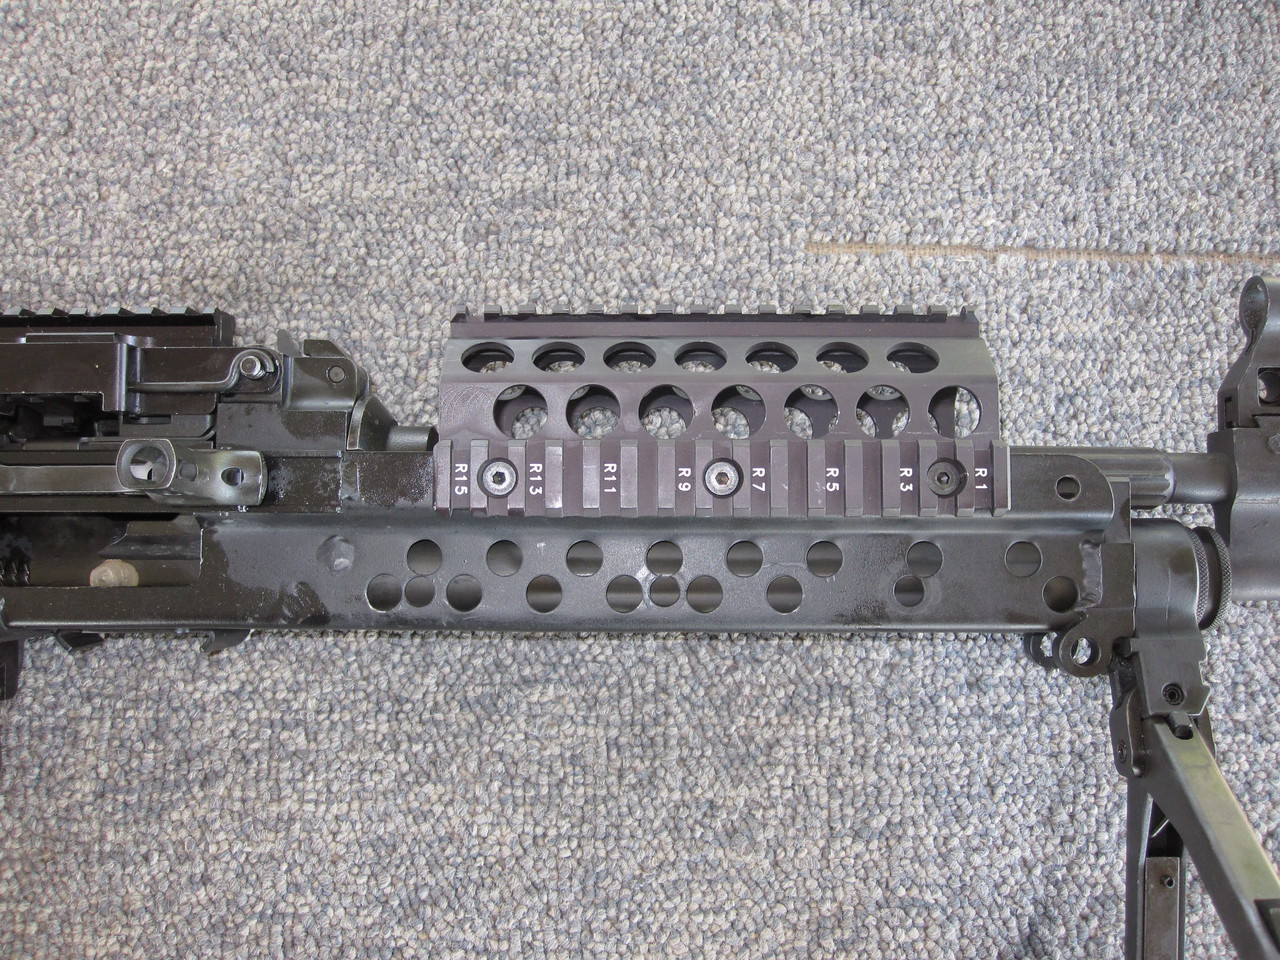 Upper RAS handguard shown on Machine Gun Armory Mk46. Use M249 SAW/MK46 High Rail position (SAWBFG1 High) with this handguard.